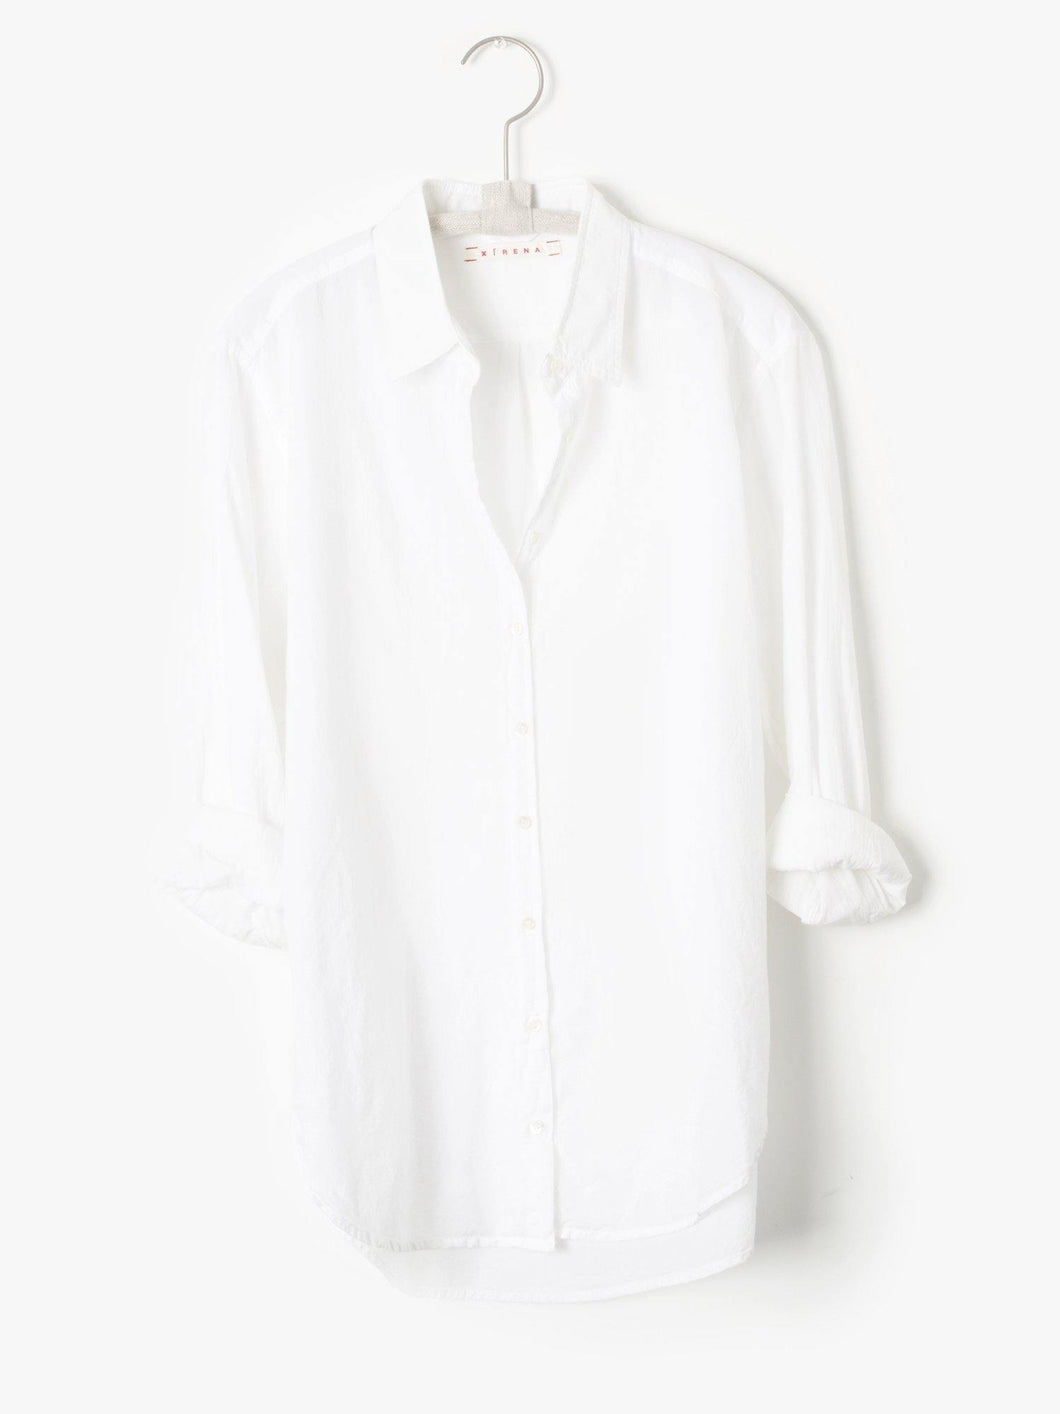 Beau Shirt White